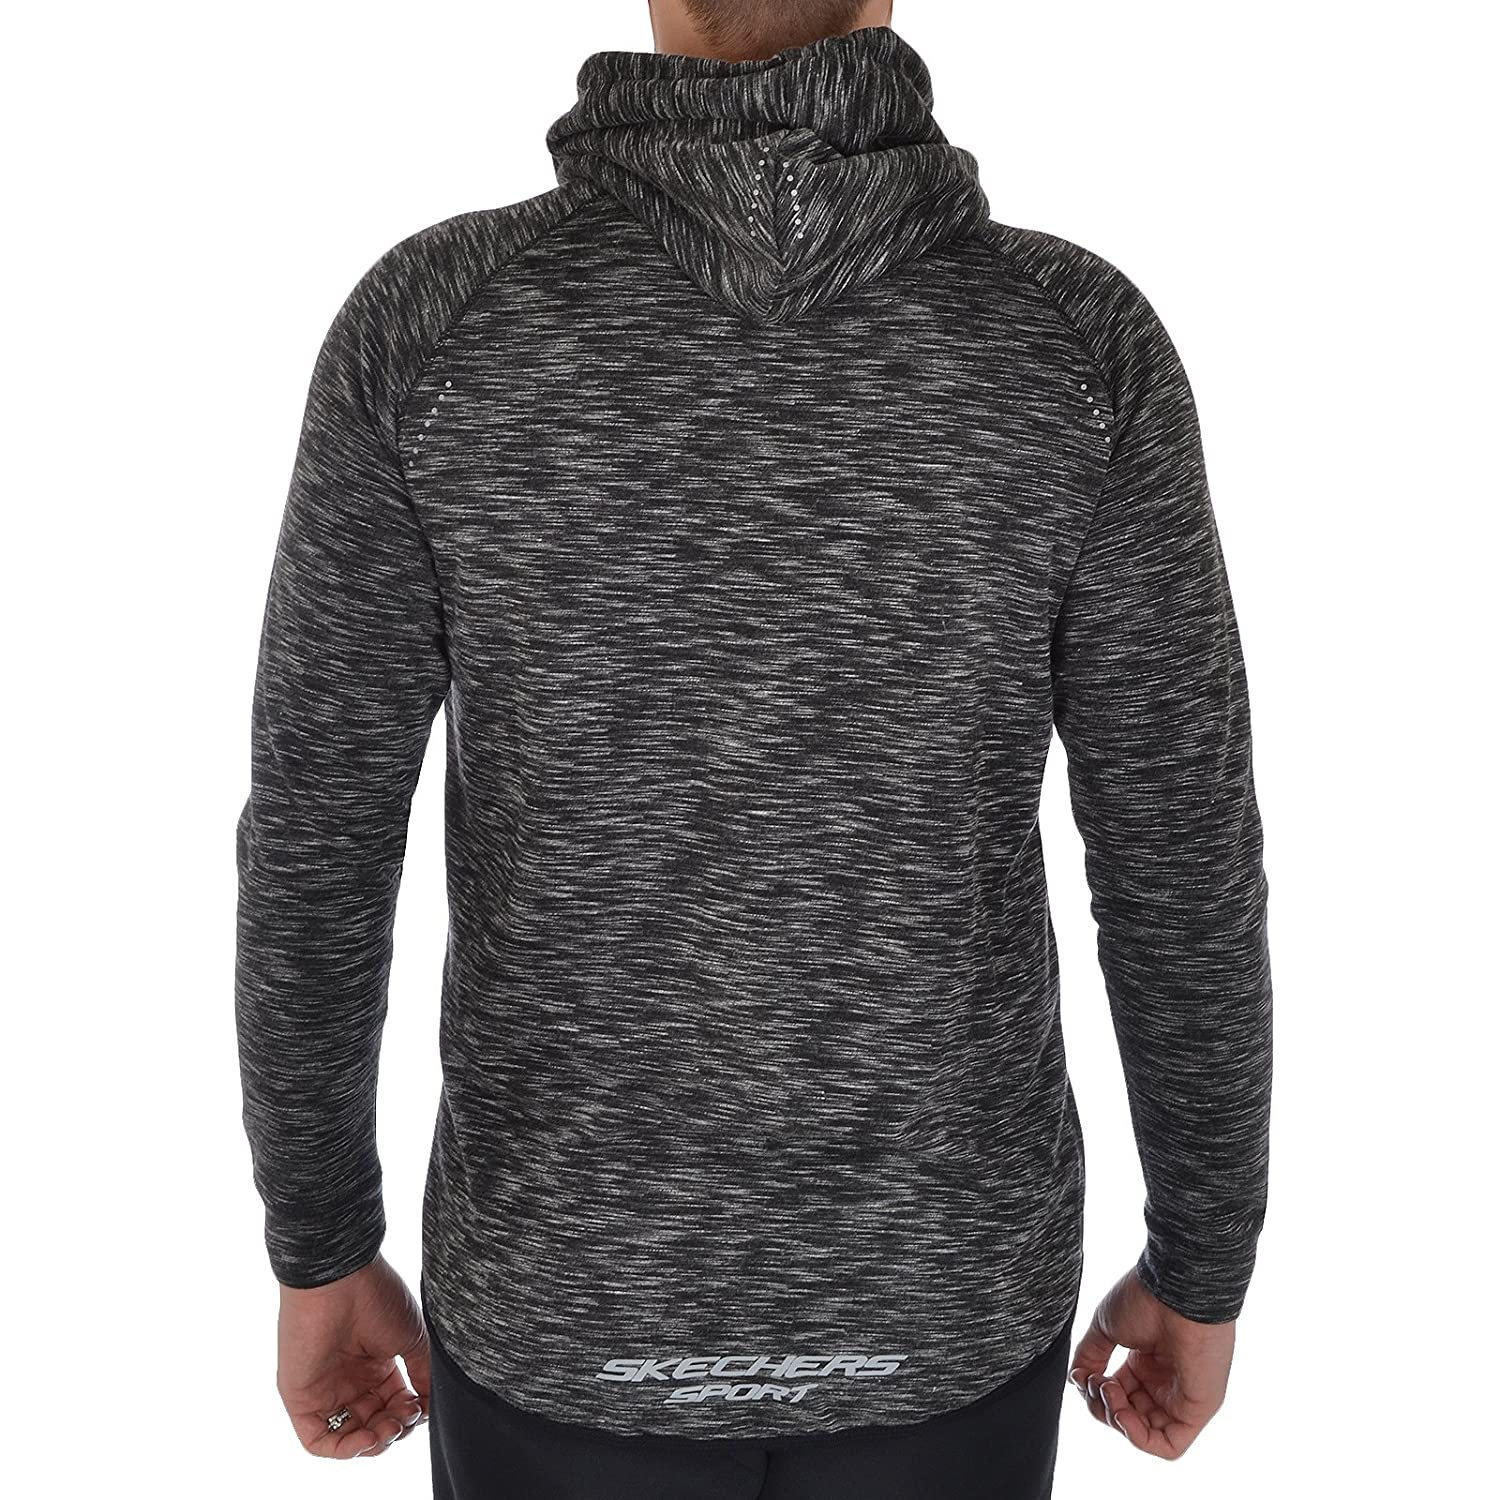 Skechers Challenger Mens Full Zip